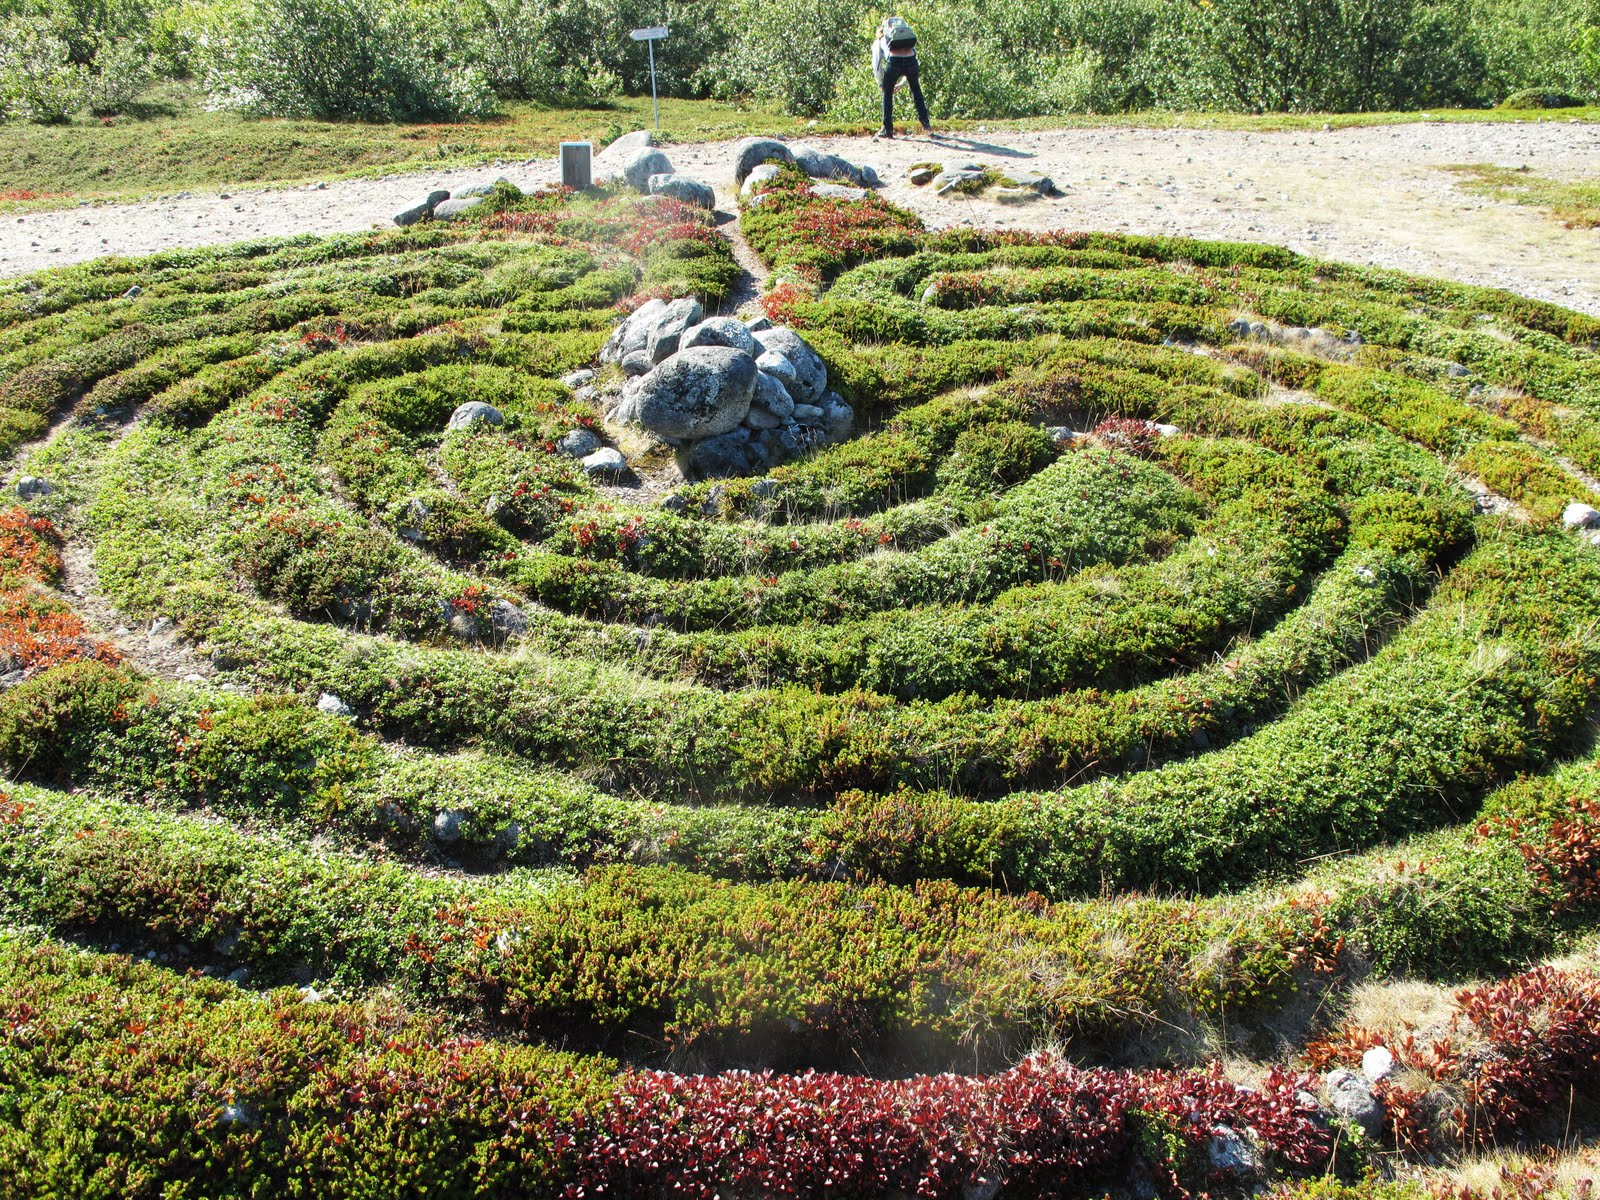 The Mystical Labyrinth in Russia (v. 1)